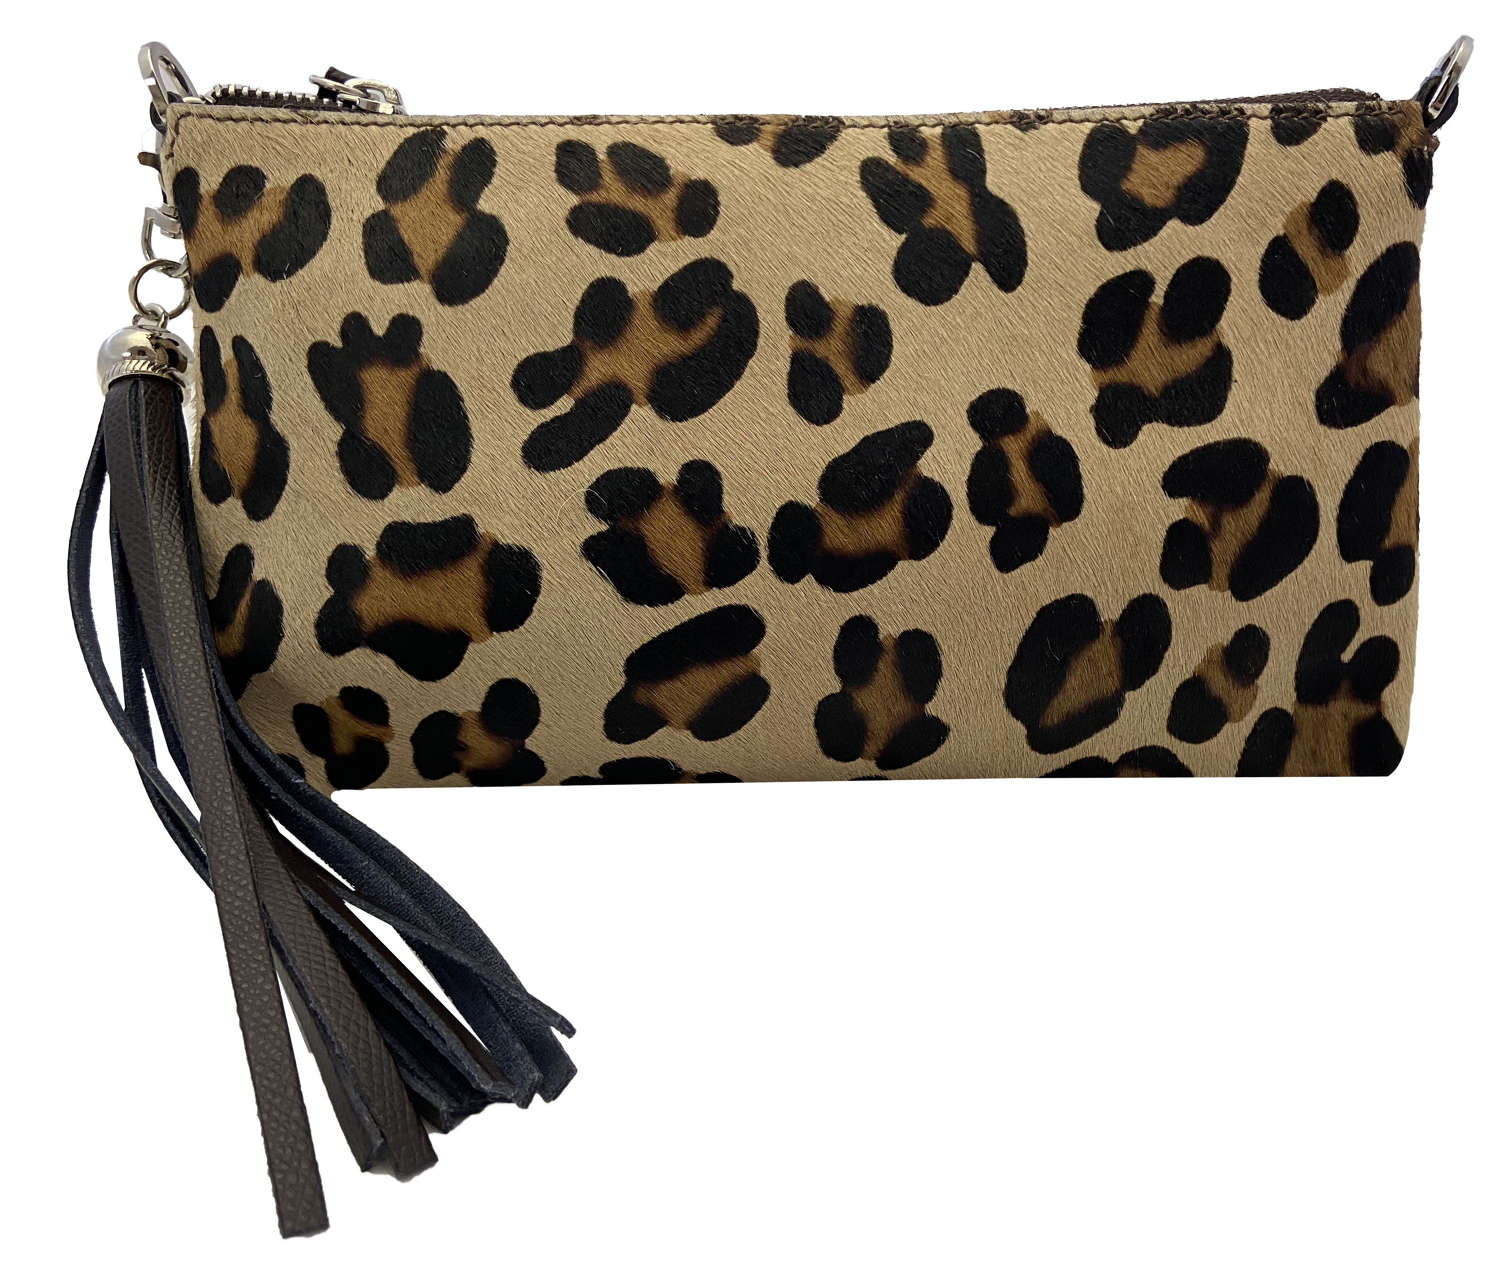 Furry/Leather Clutch Bags